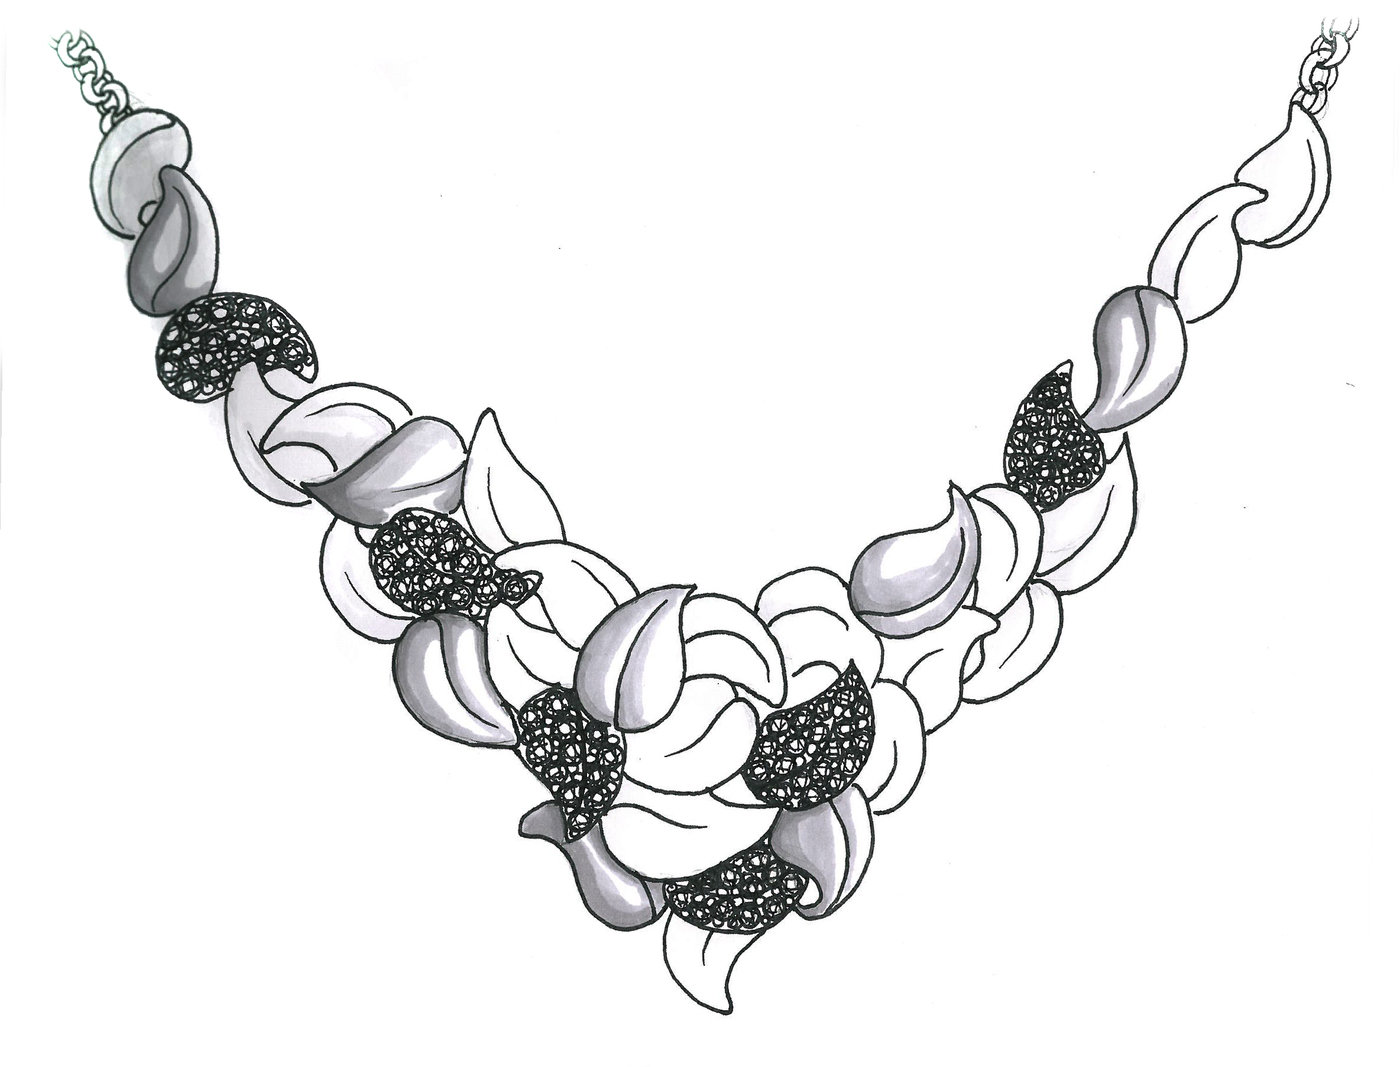 Jewelry Sketches Amp Renders By Ashley Warsaw At Coroflot Com